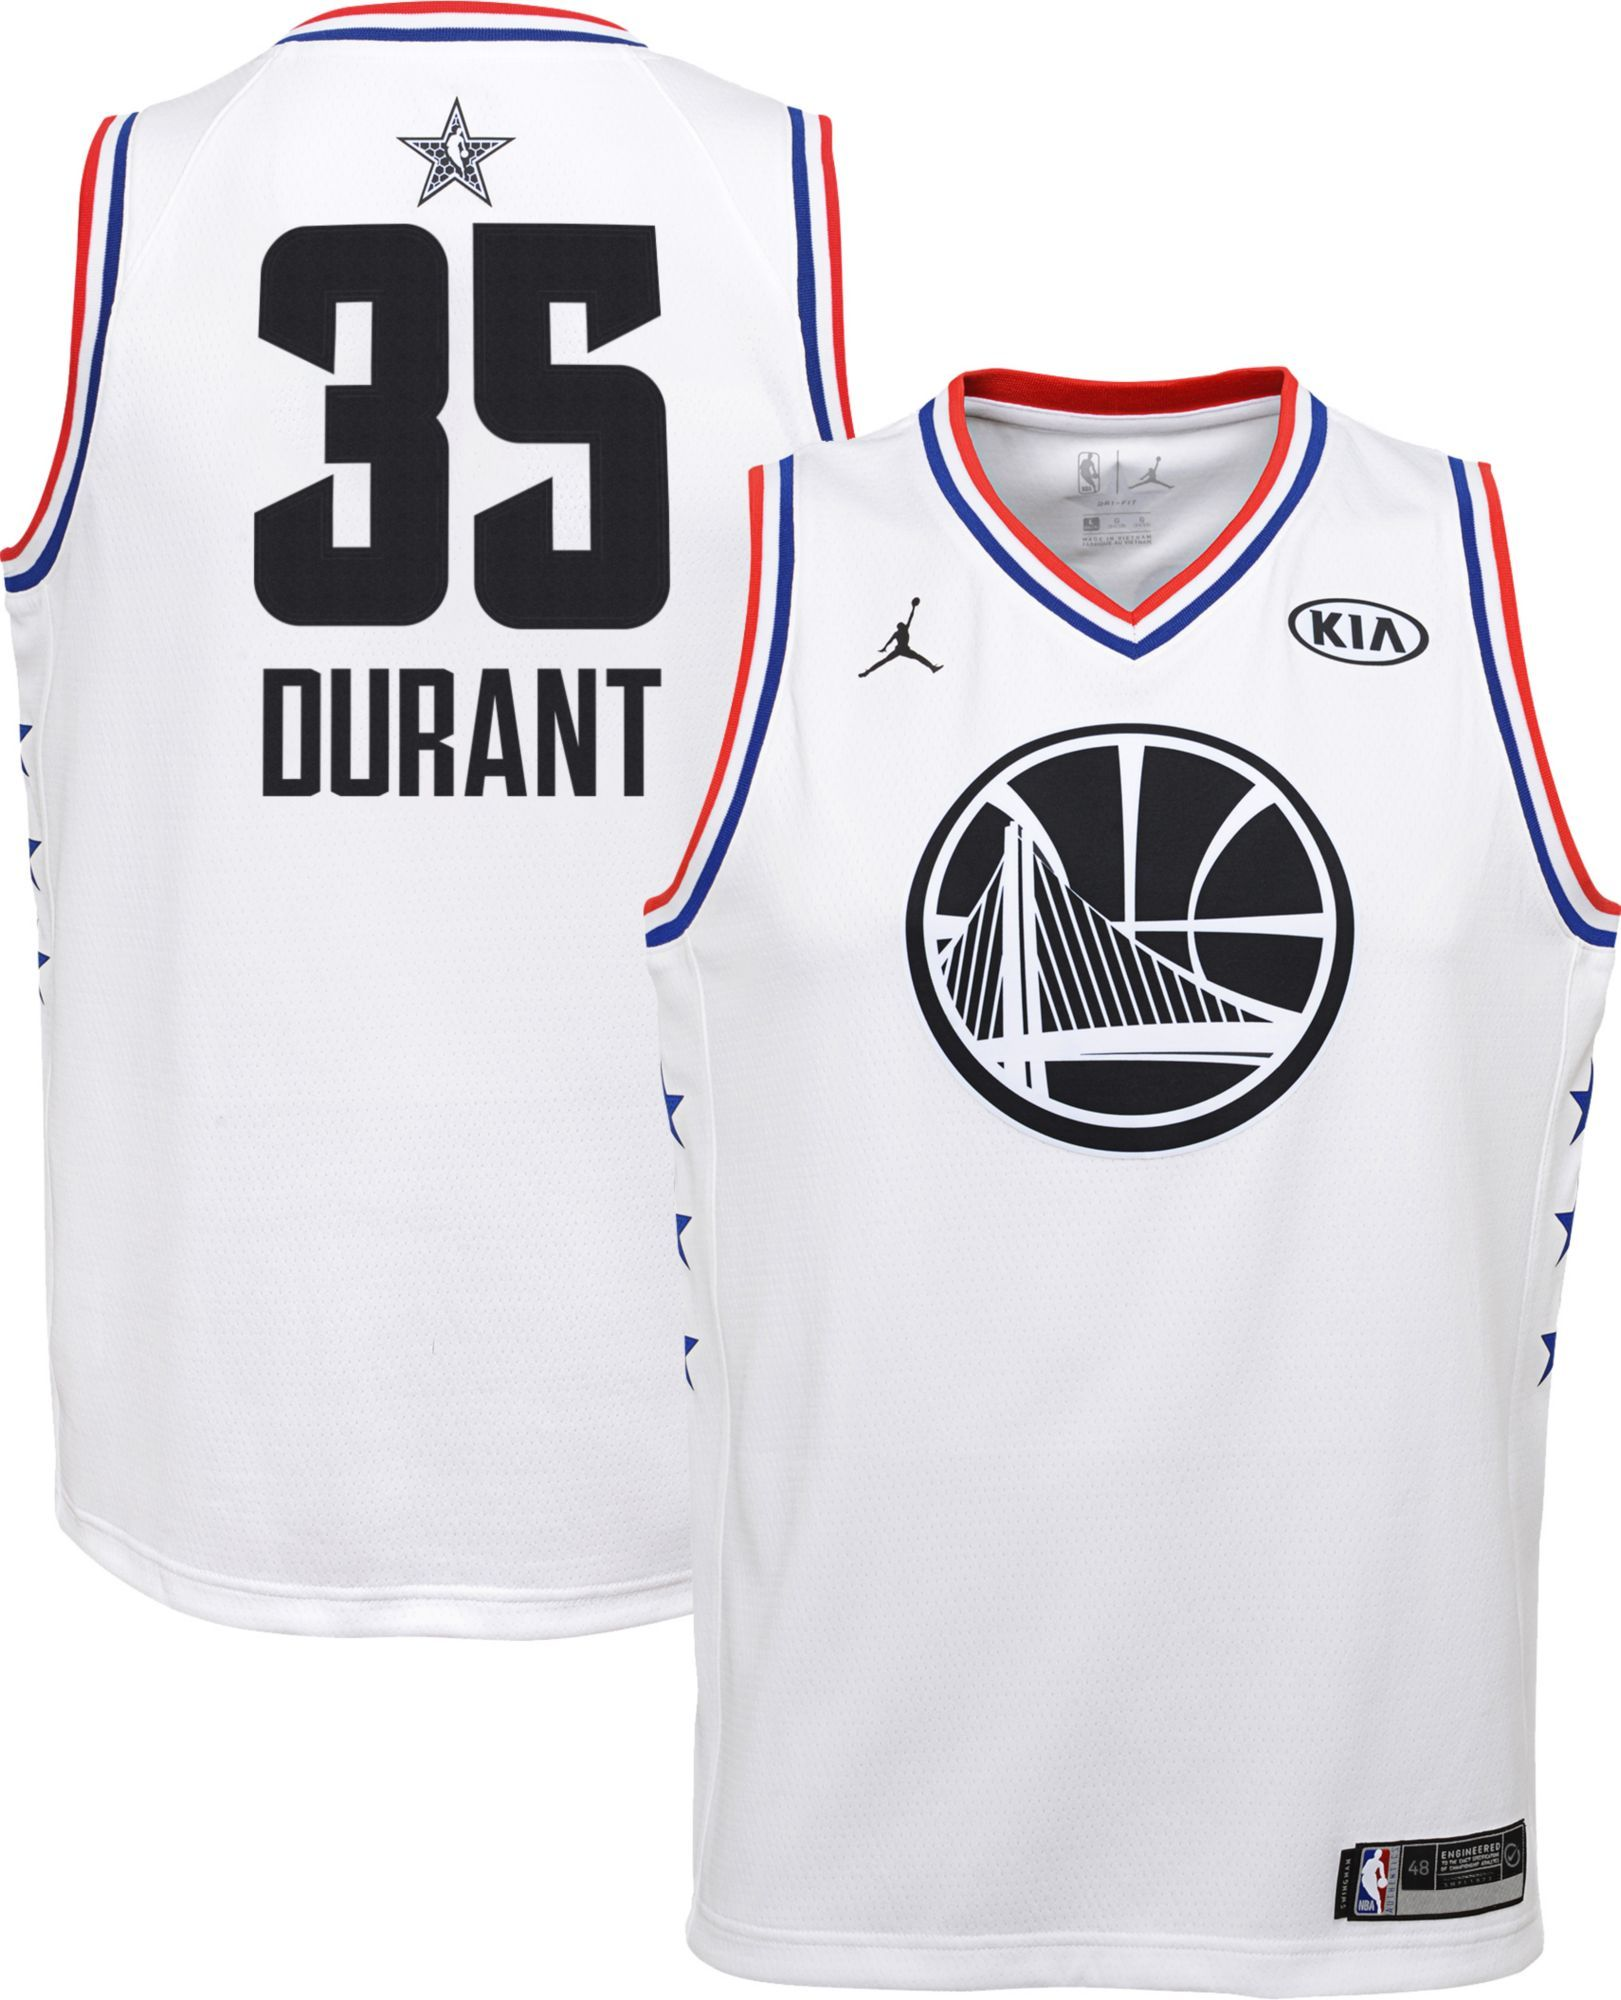 9bc3adc0b85 Jordan Youth 2019 NBA All-Star Game Kevin Durant White Dri-FIT Swingman  Jersey